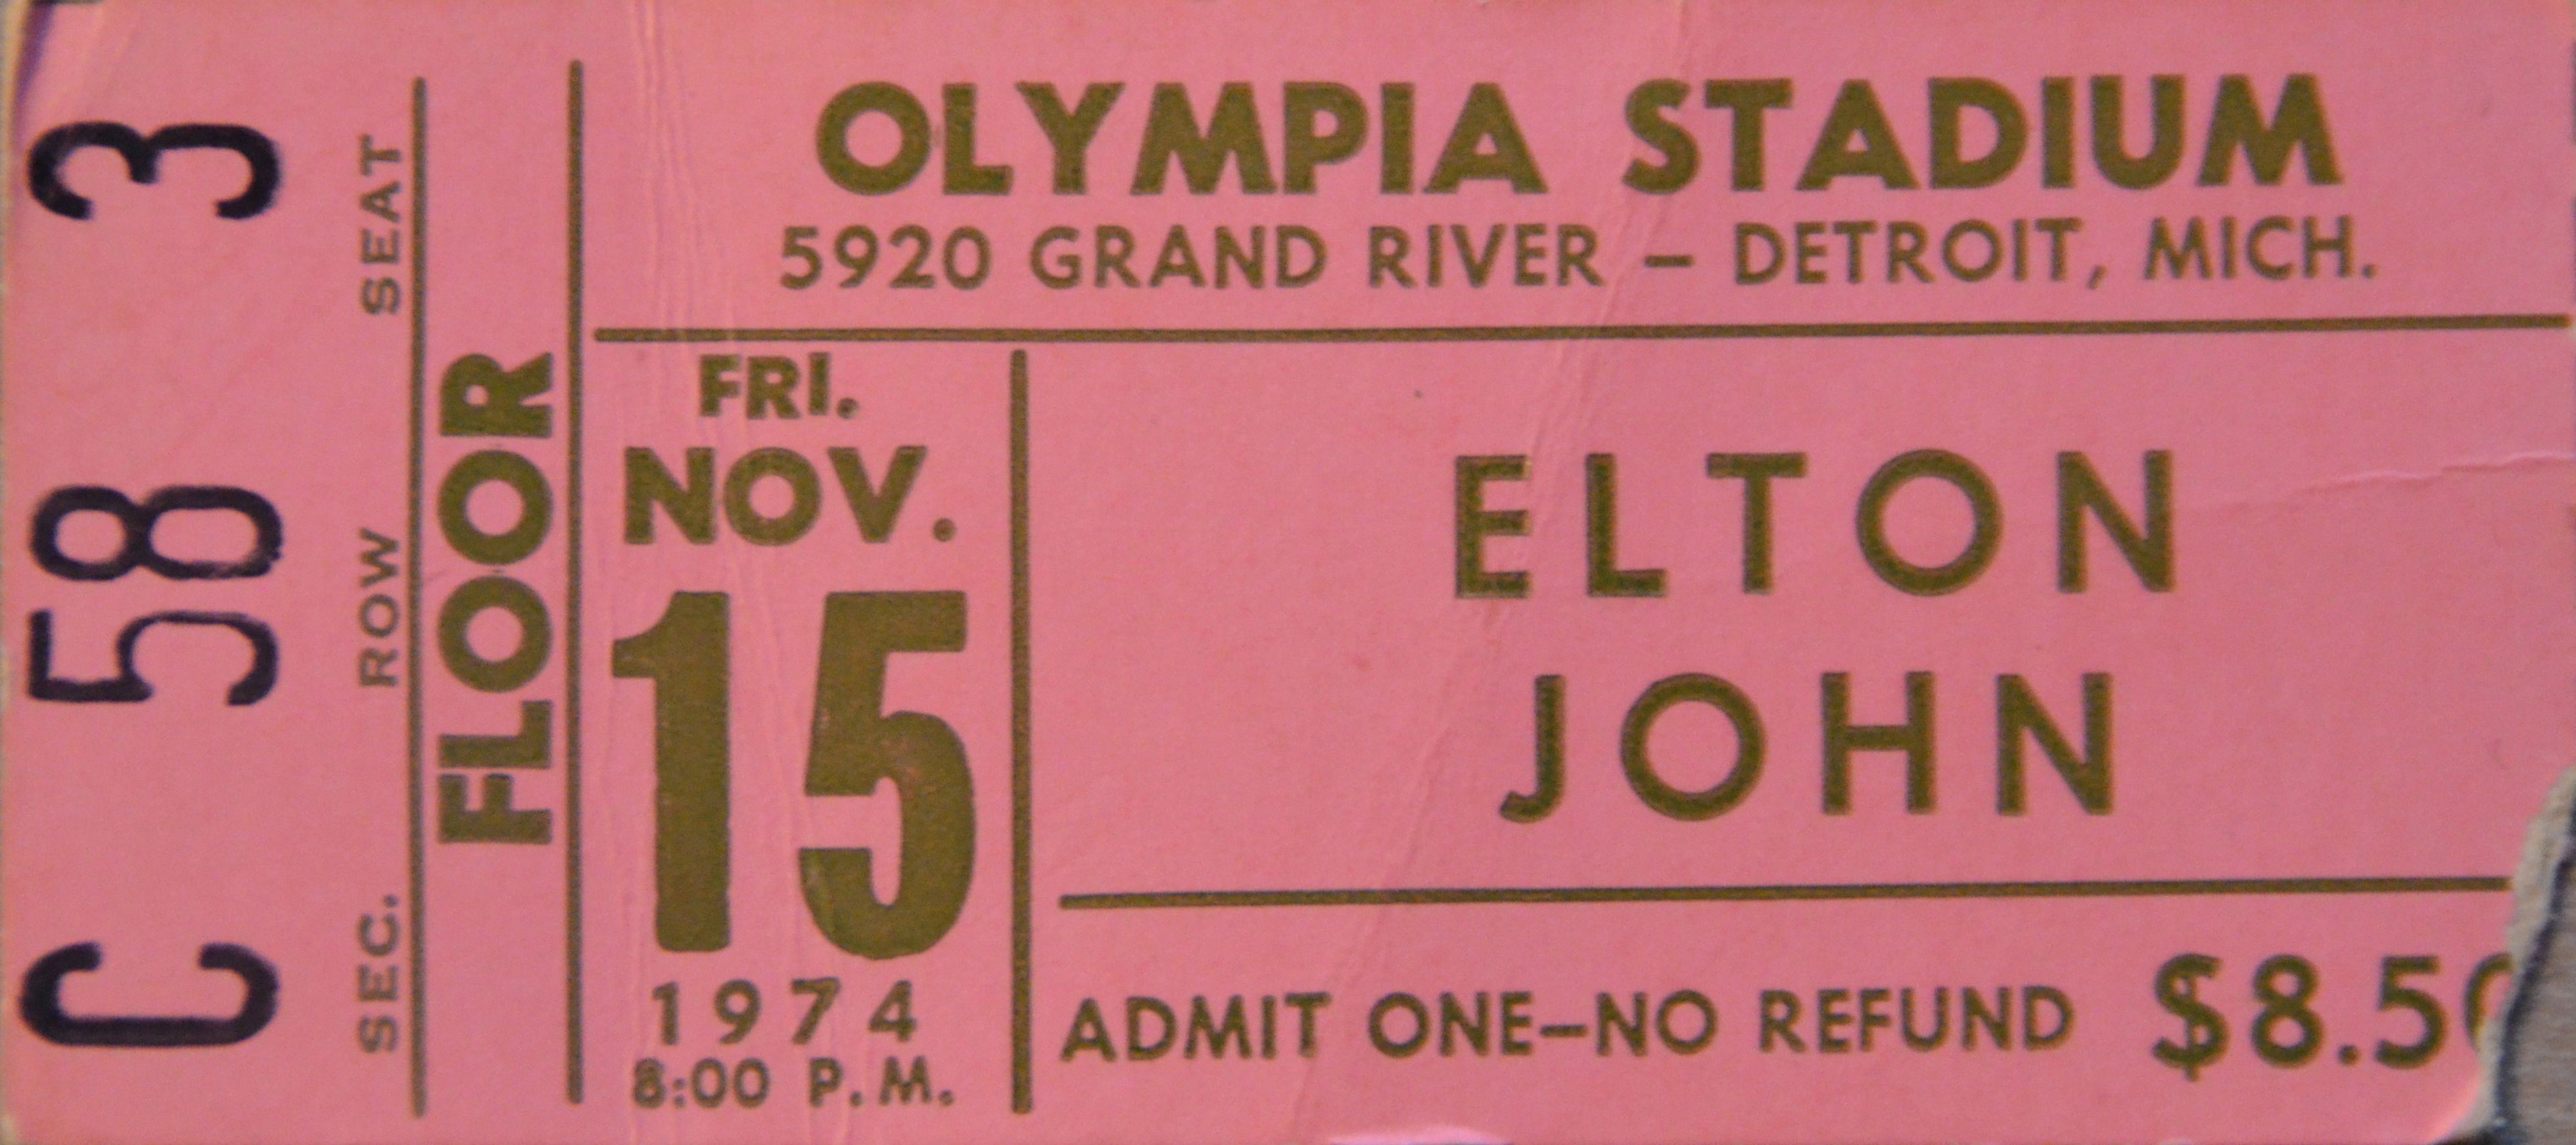 Elton John Olympia Stadium Detroit Night 3 Went To All Three Shows Though For Some Reason I Only Have The Stu Olympia Stadium Detroit Yellow Brick Road